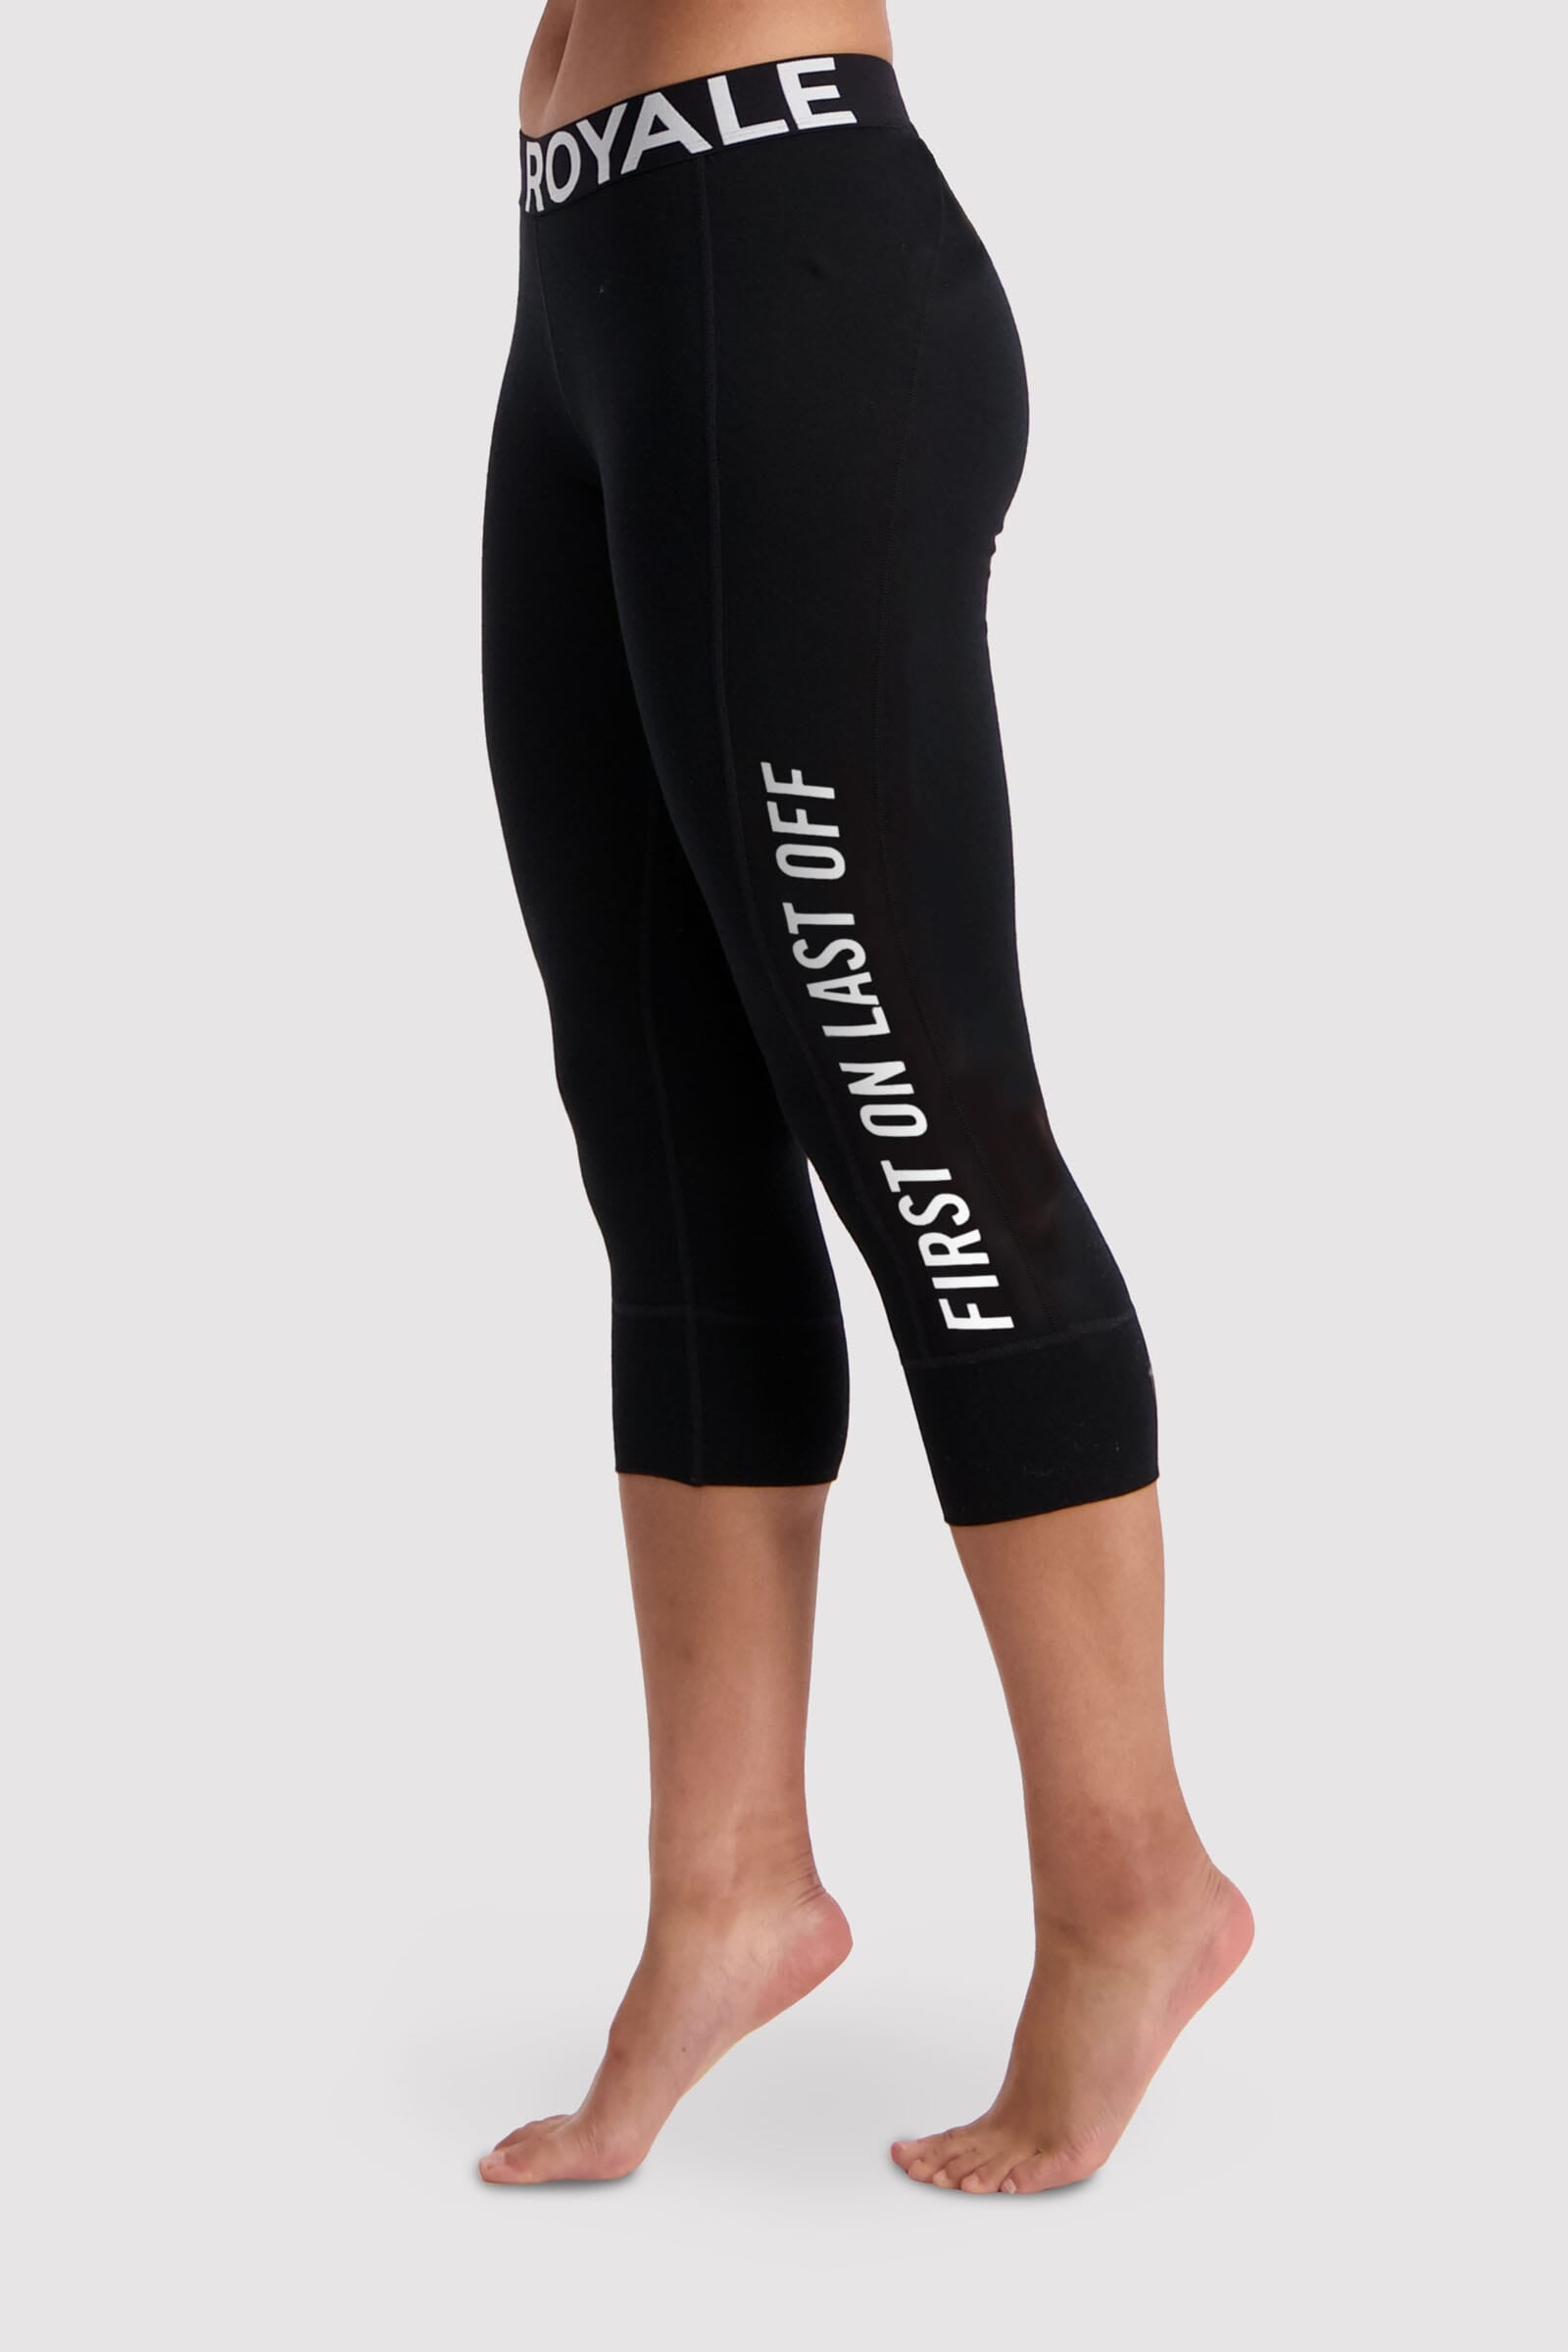 Christy 3/4 Legging - Black